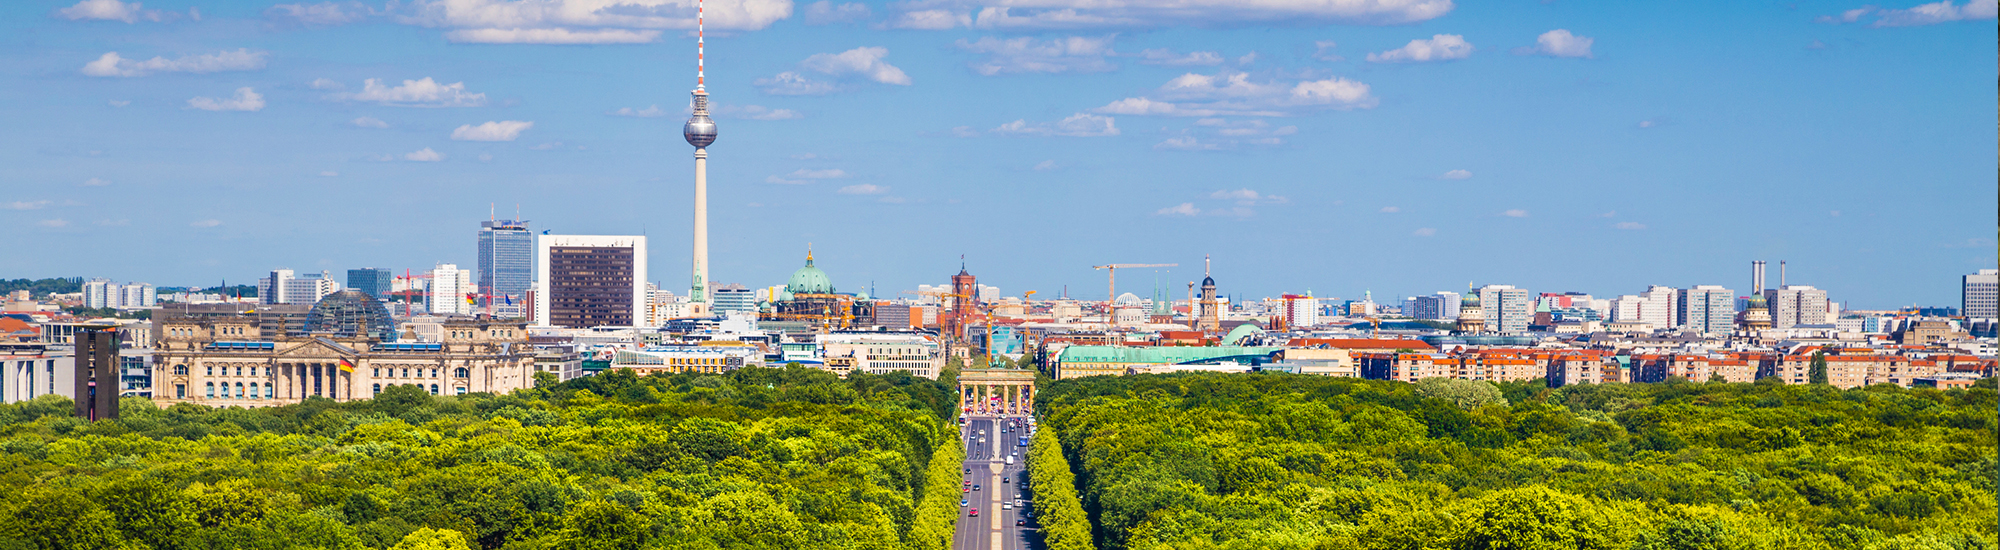 North to South, East to West - Germany's great cities await with Experience Germany Travel